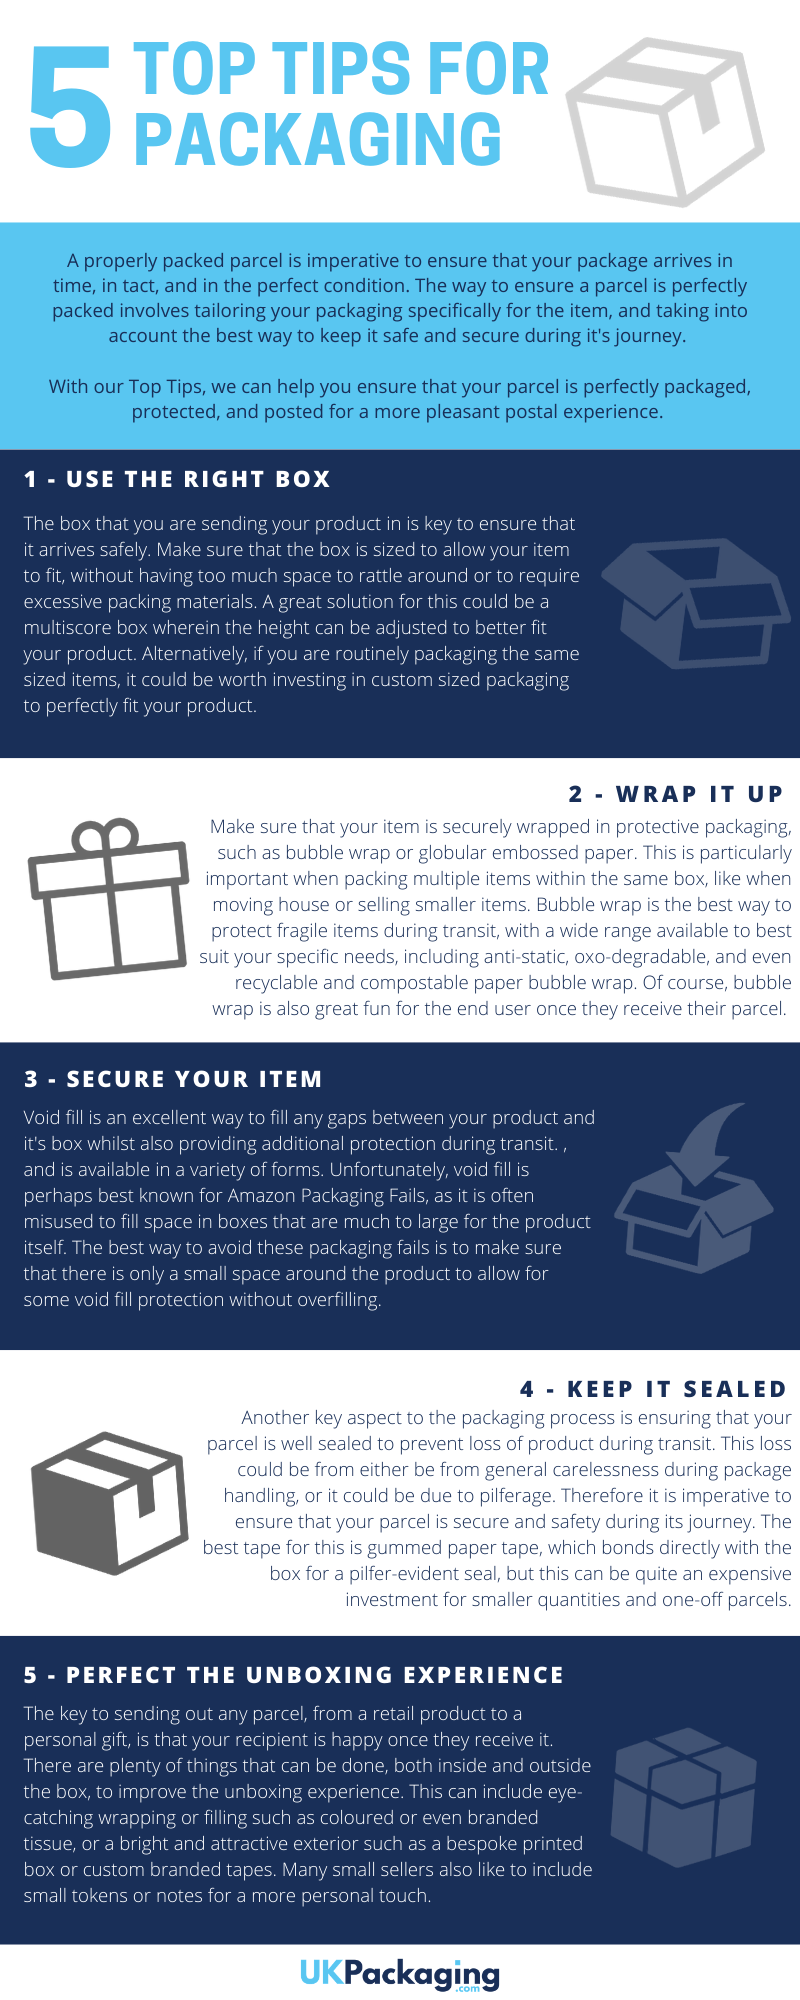 Top Tips for Packaging